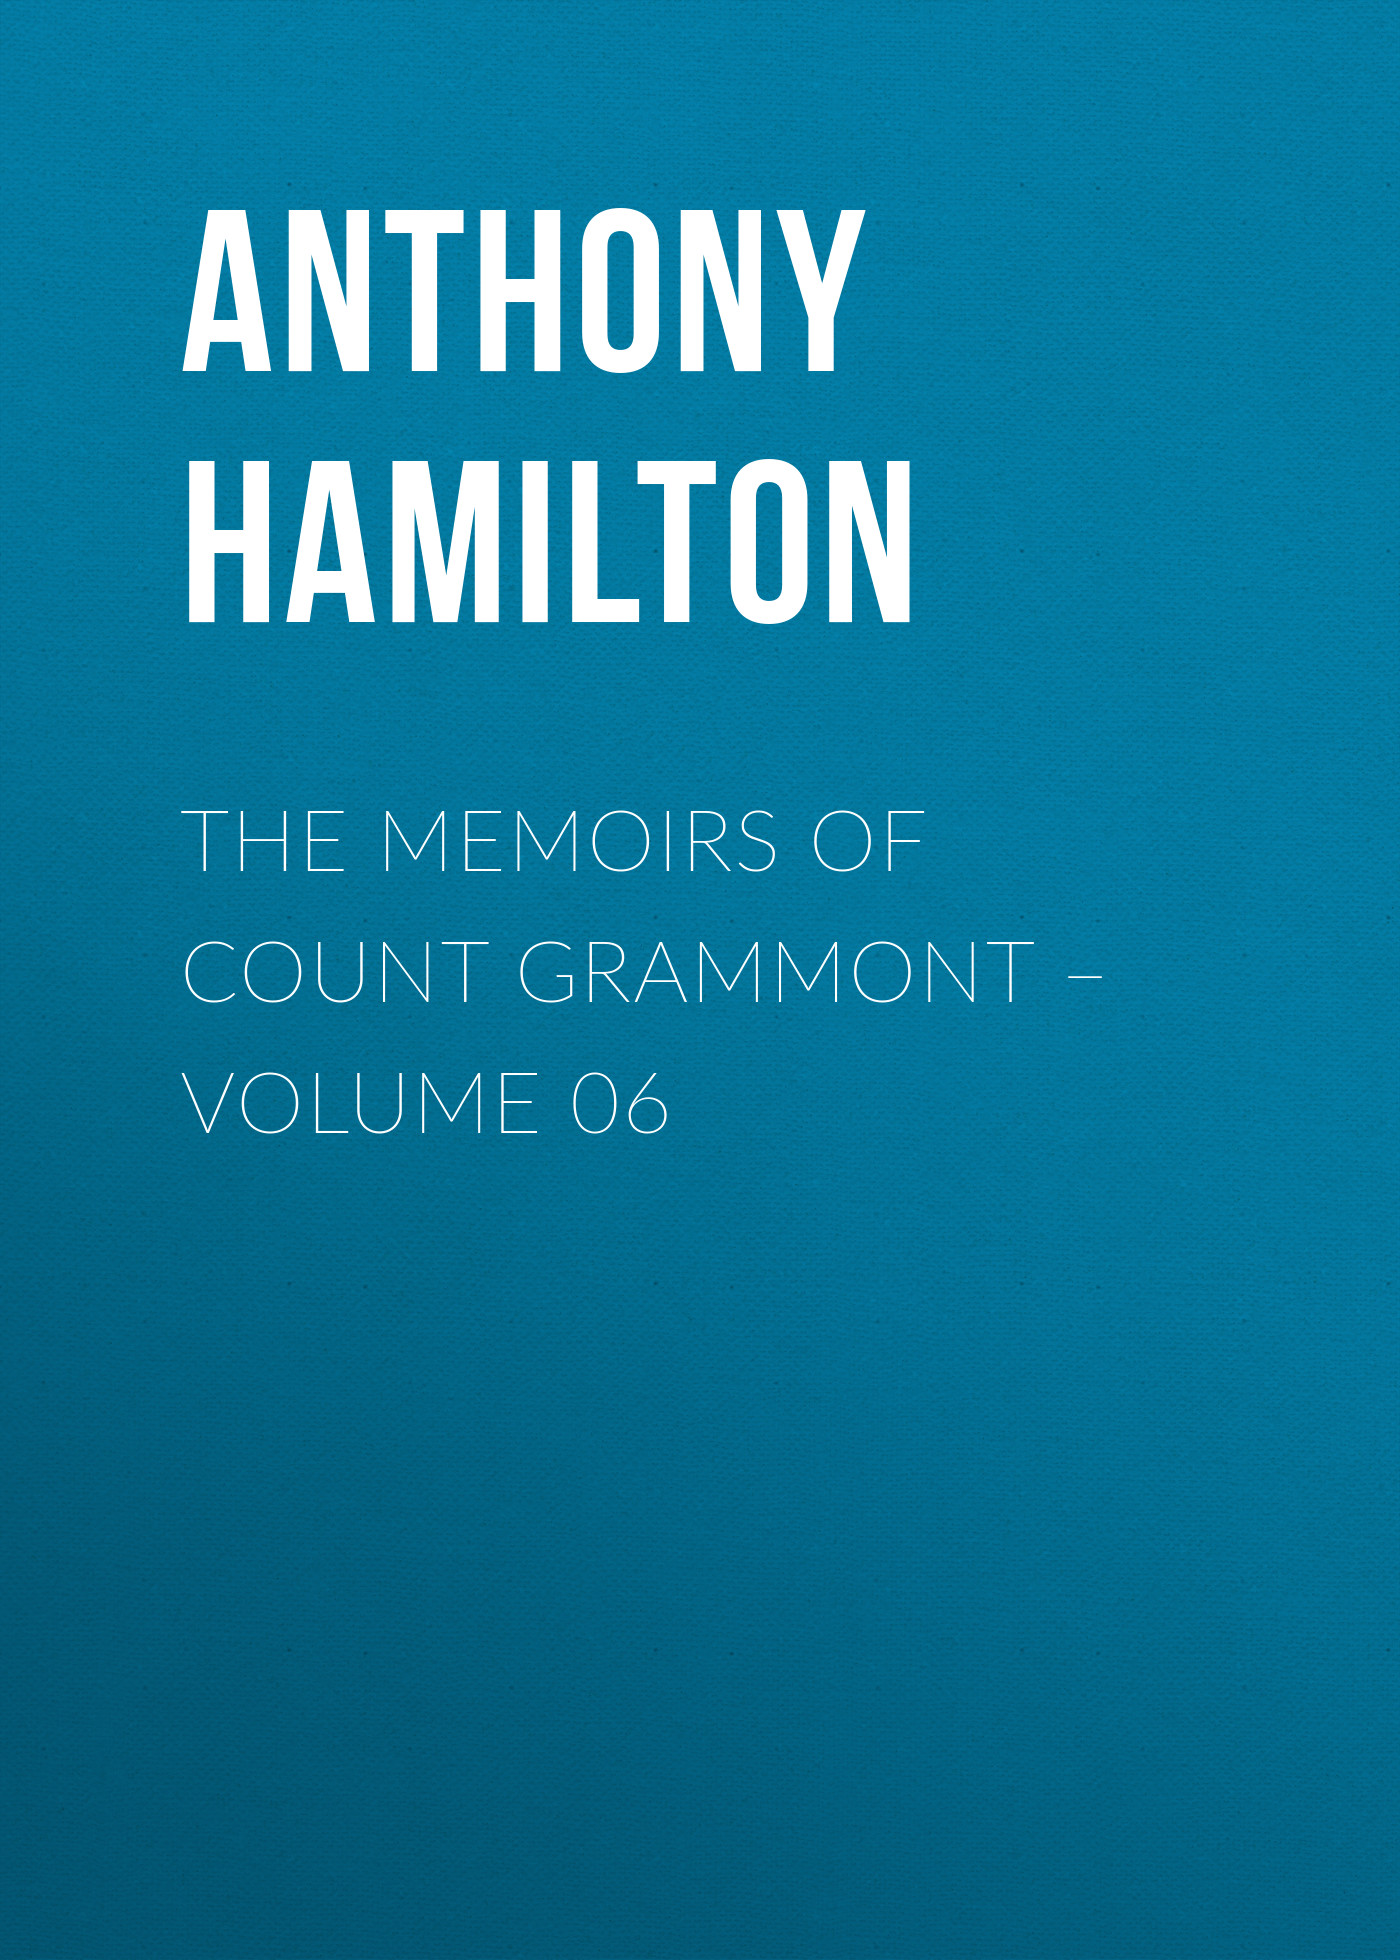 The Memoirs of Count Grammont – Volume 06